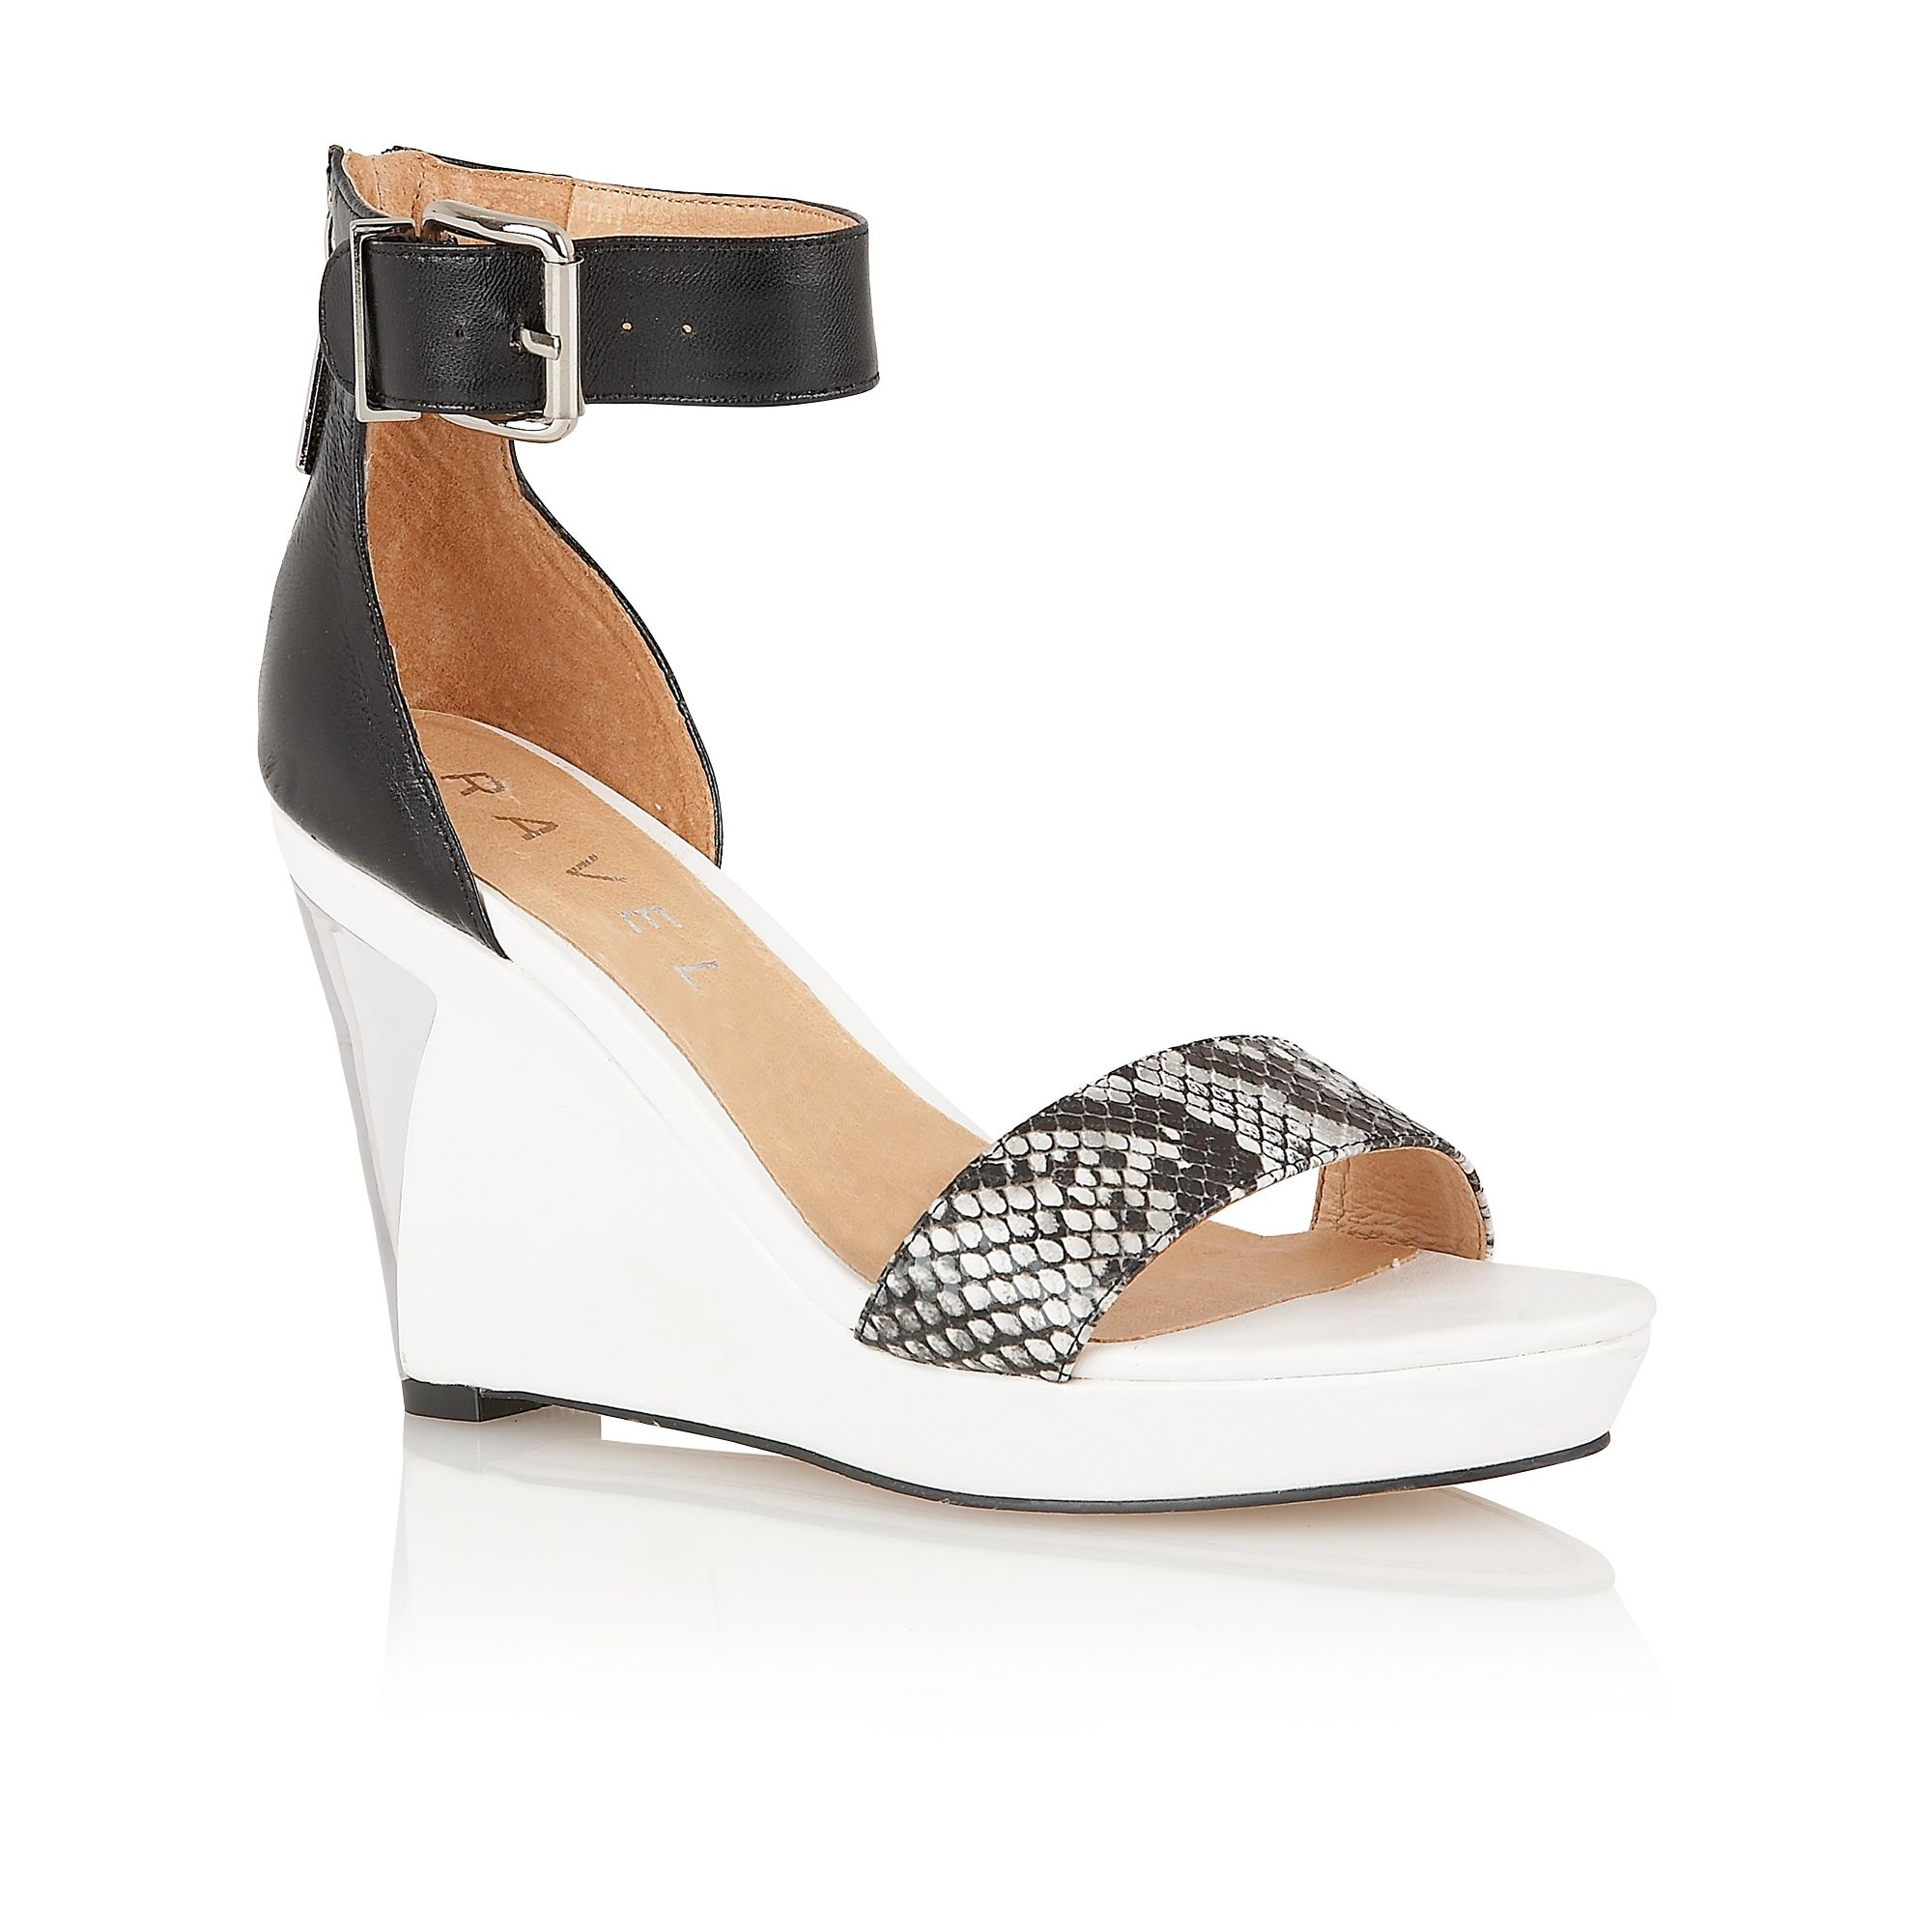 Amaryllis leather open toe buckle sandals